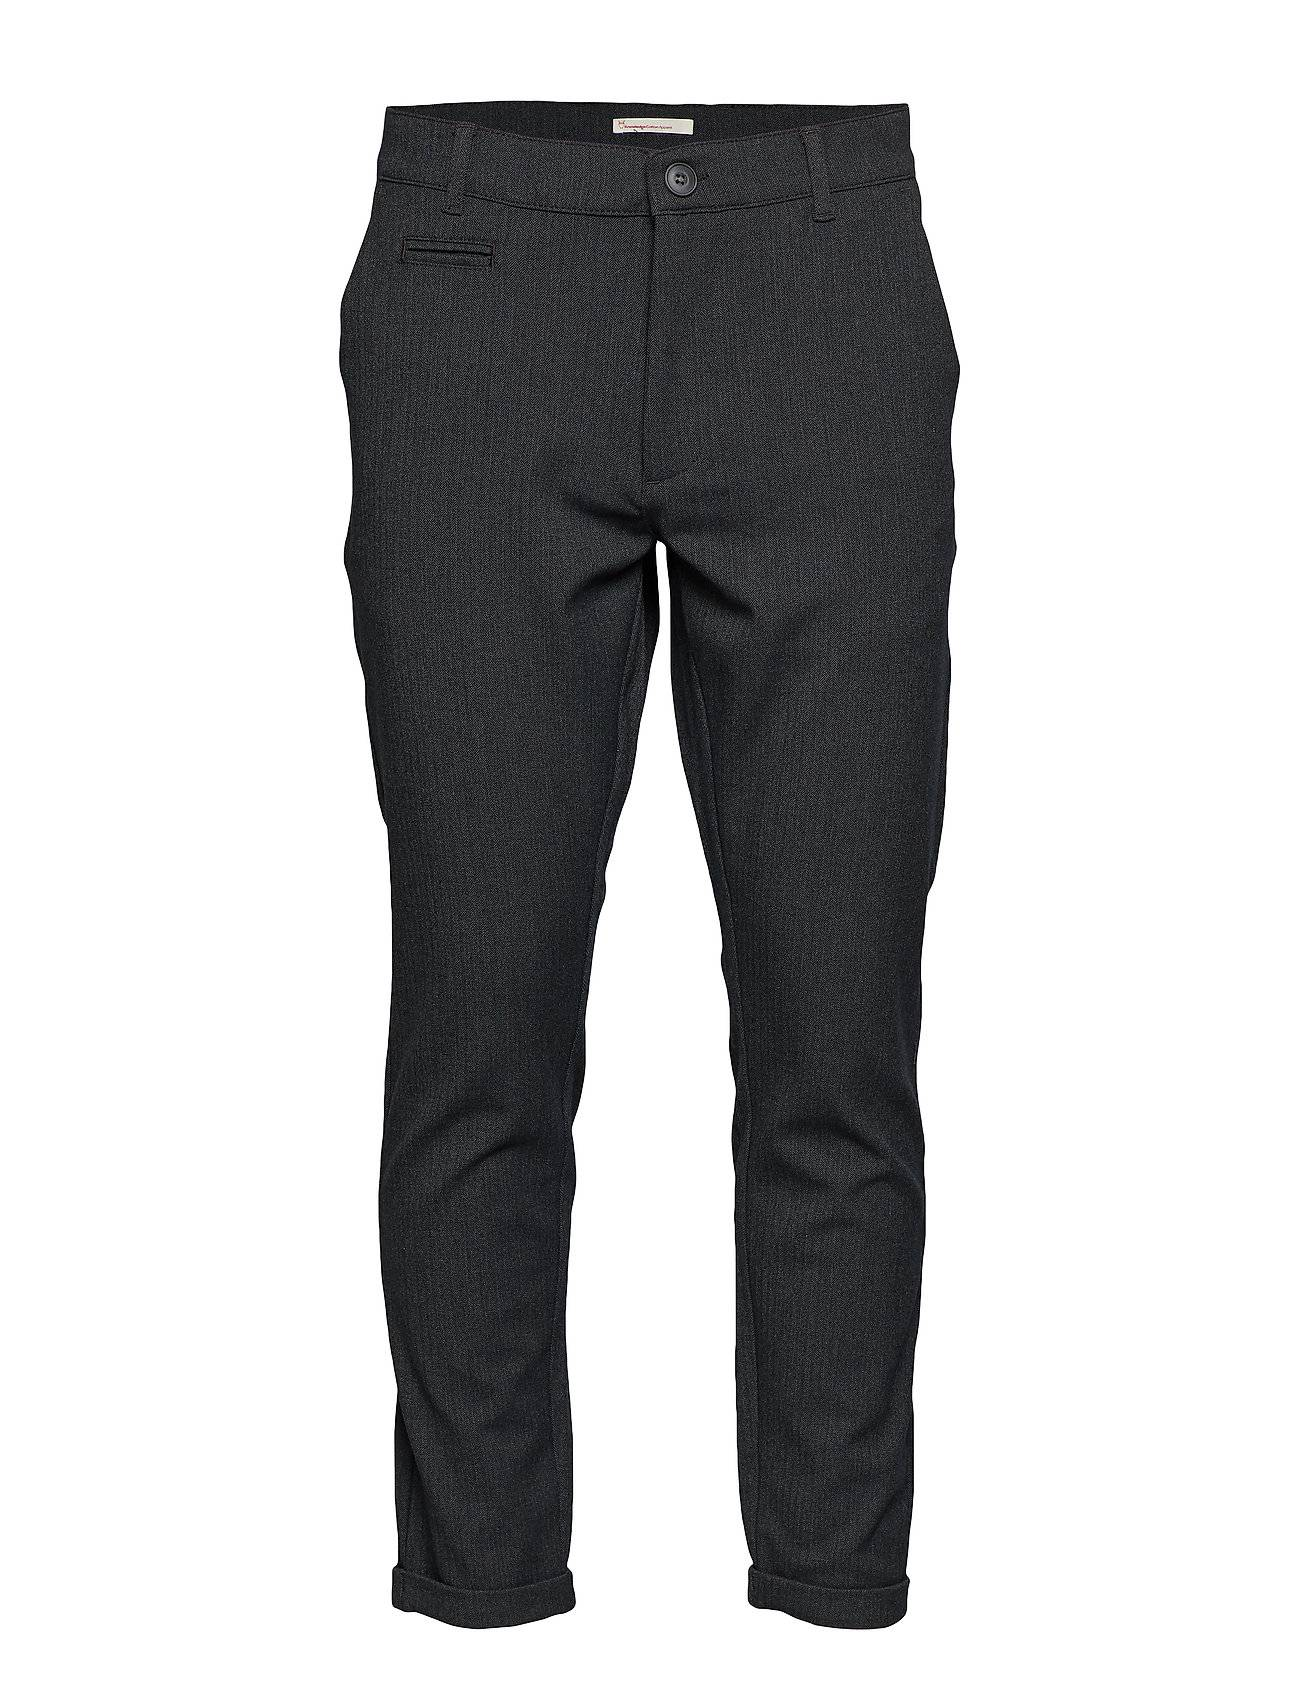 Knowledge Cotton Apparel Fishbone Structured Chino - Grs